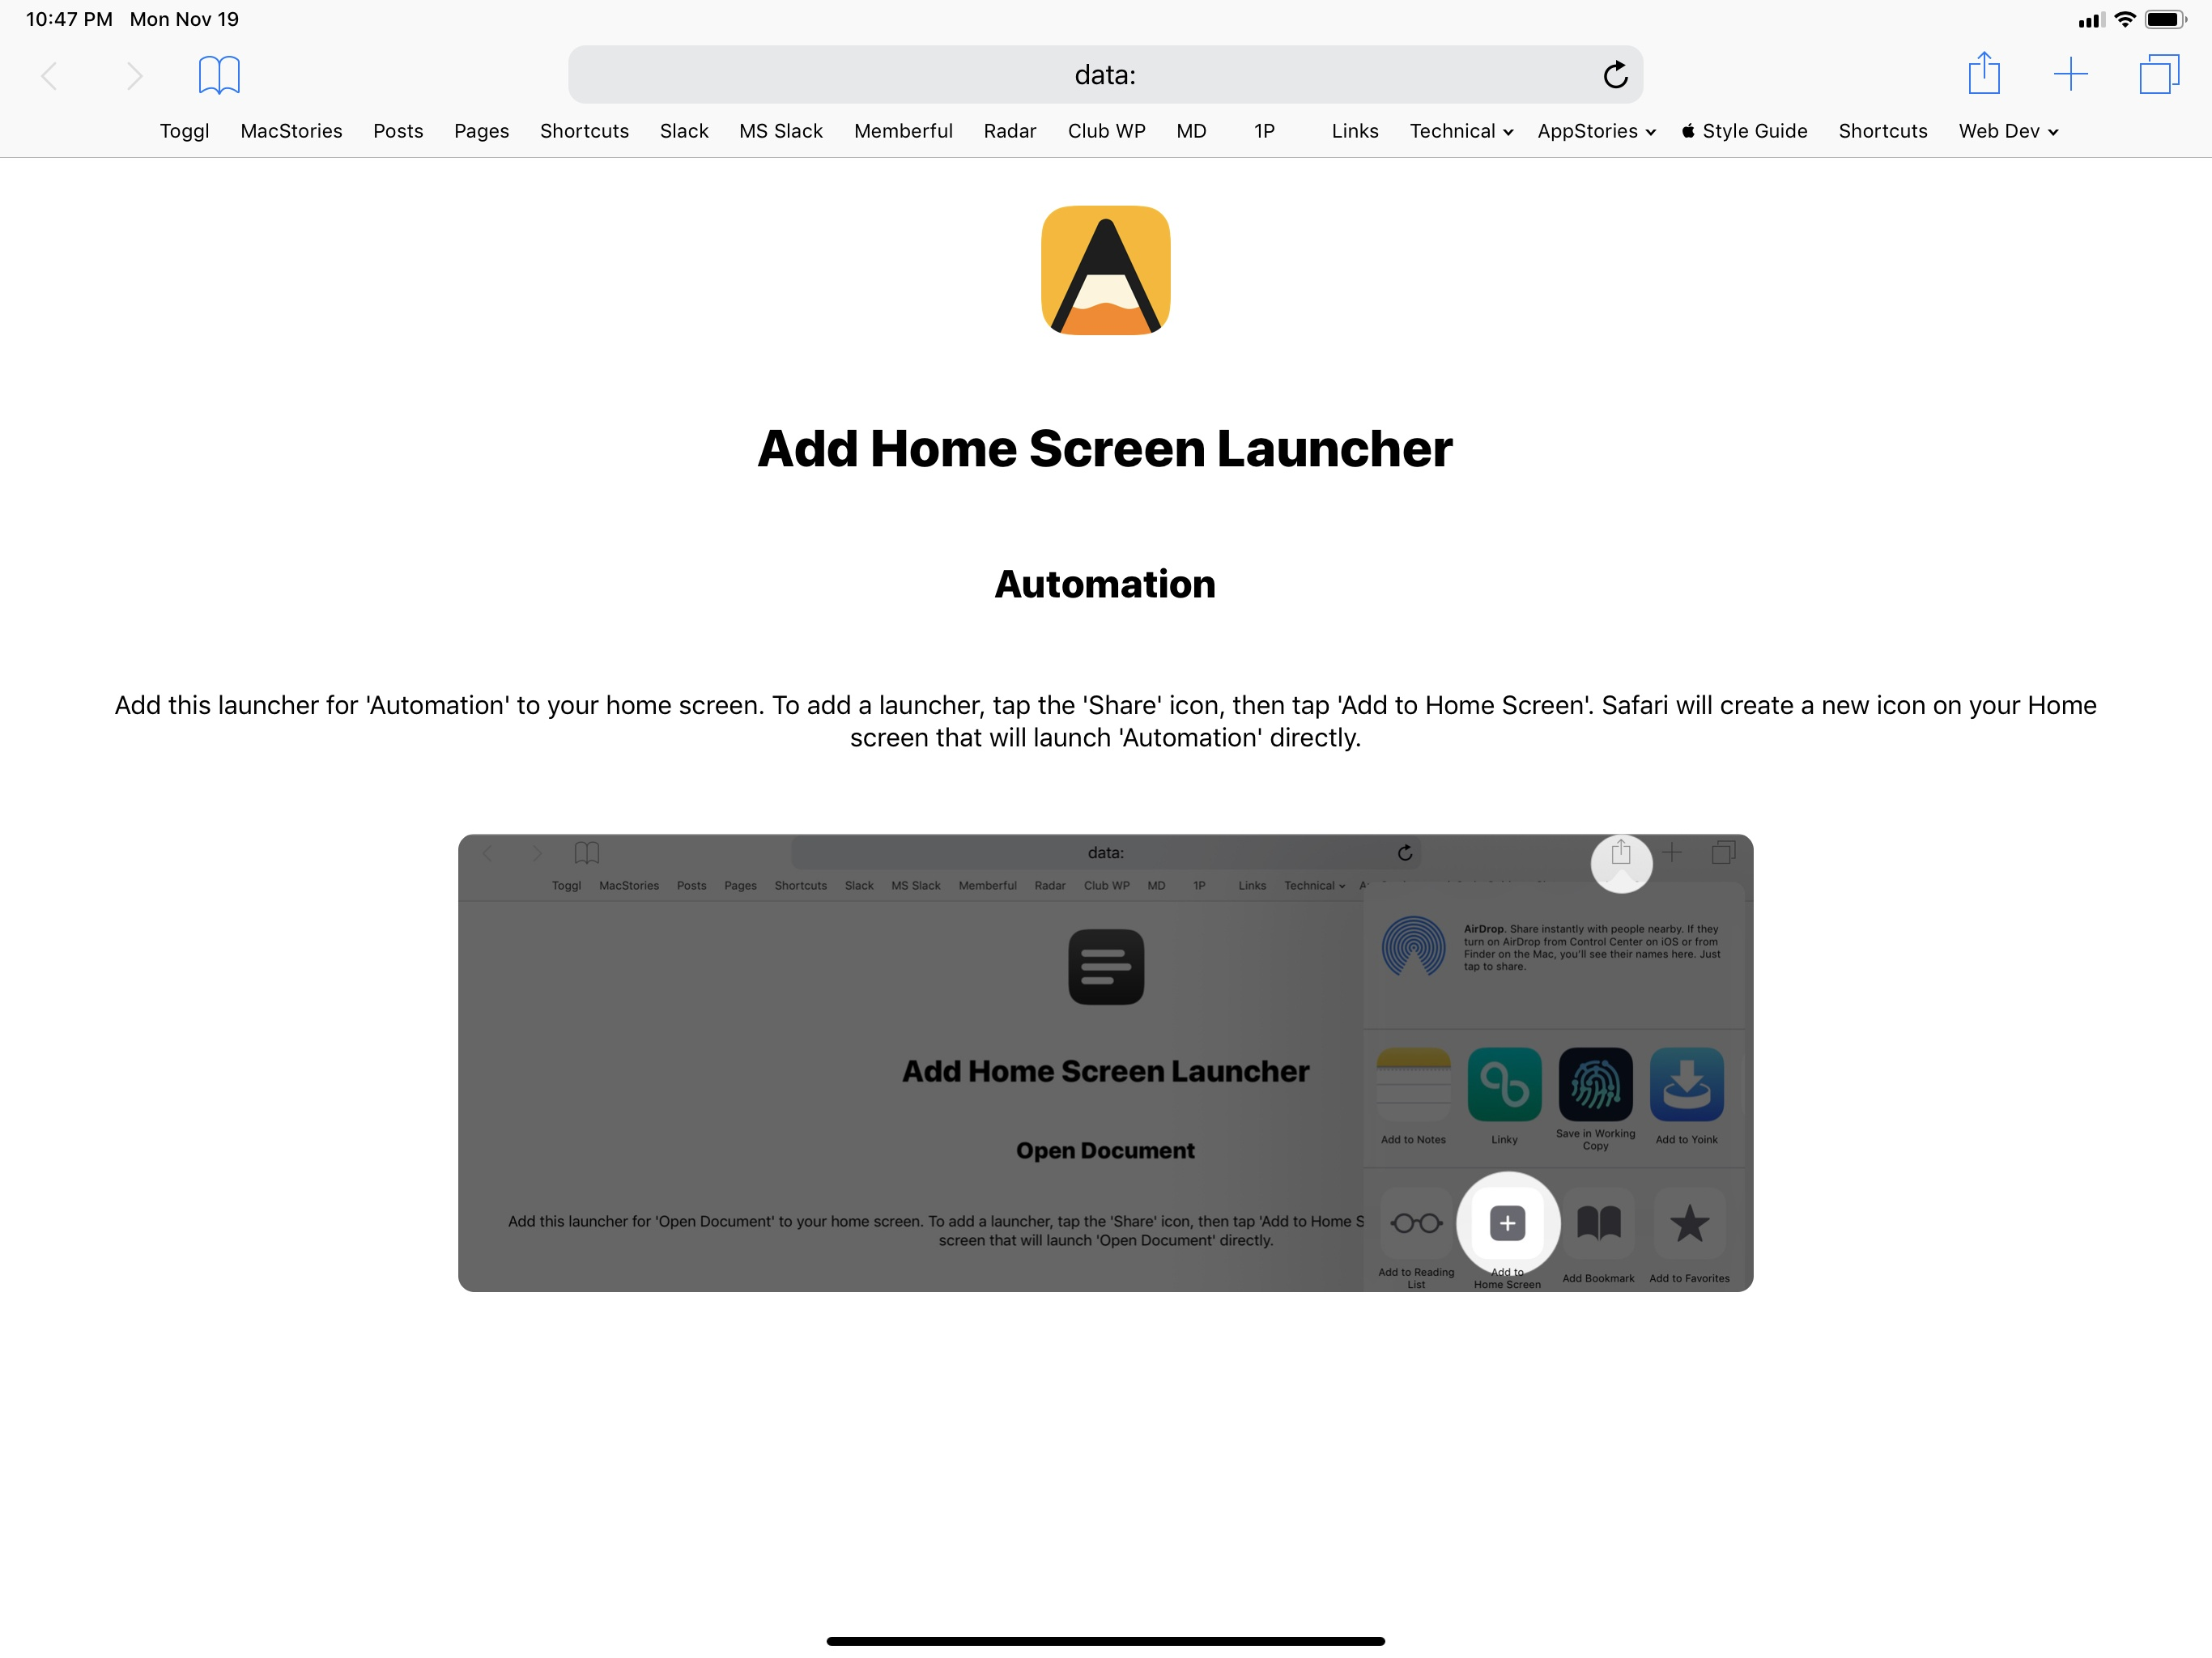 A custom webpage launched by the shortcut with instructions on how to add a launcher to the home screen.